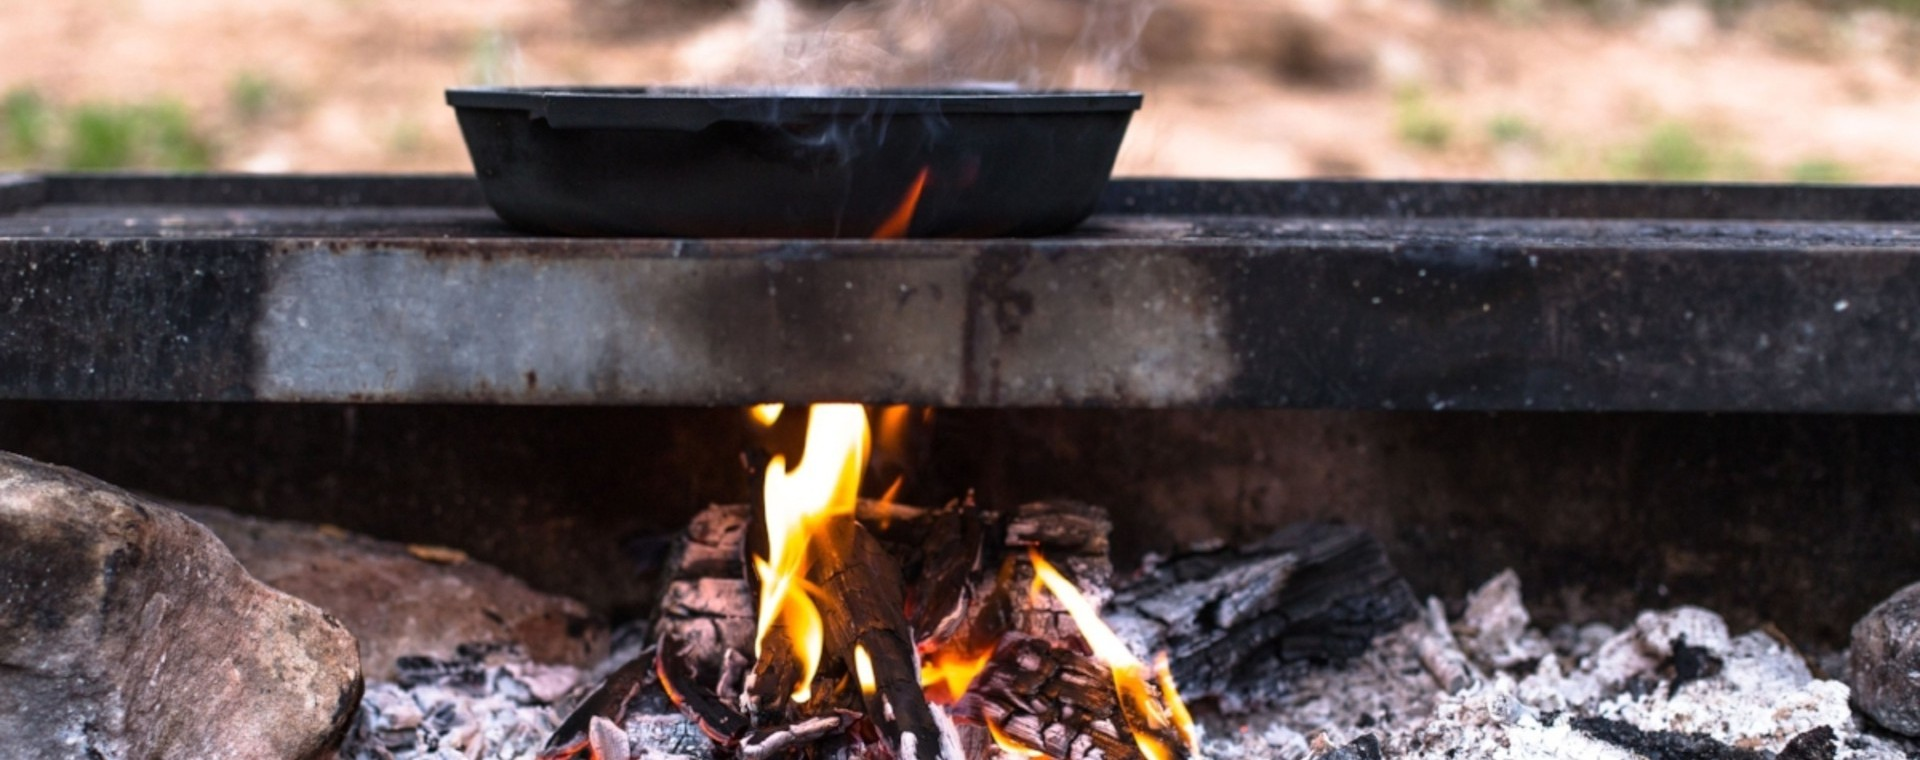 Campfire Cooking Is Easy With Epicurean Butter